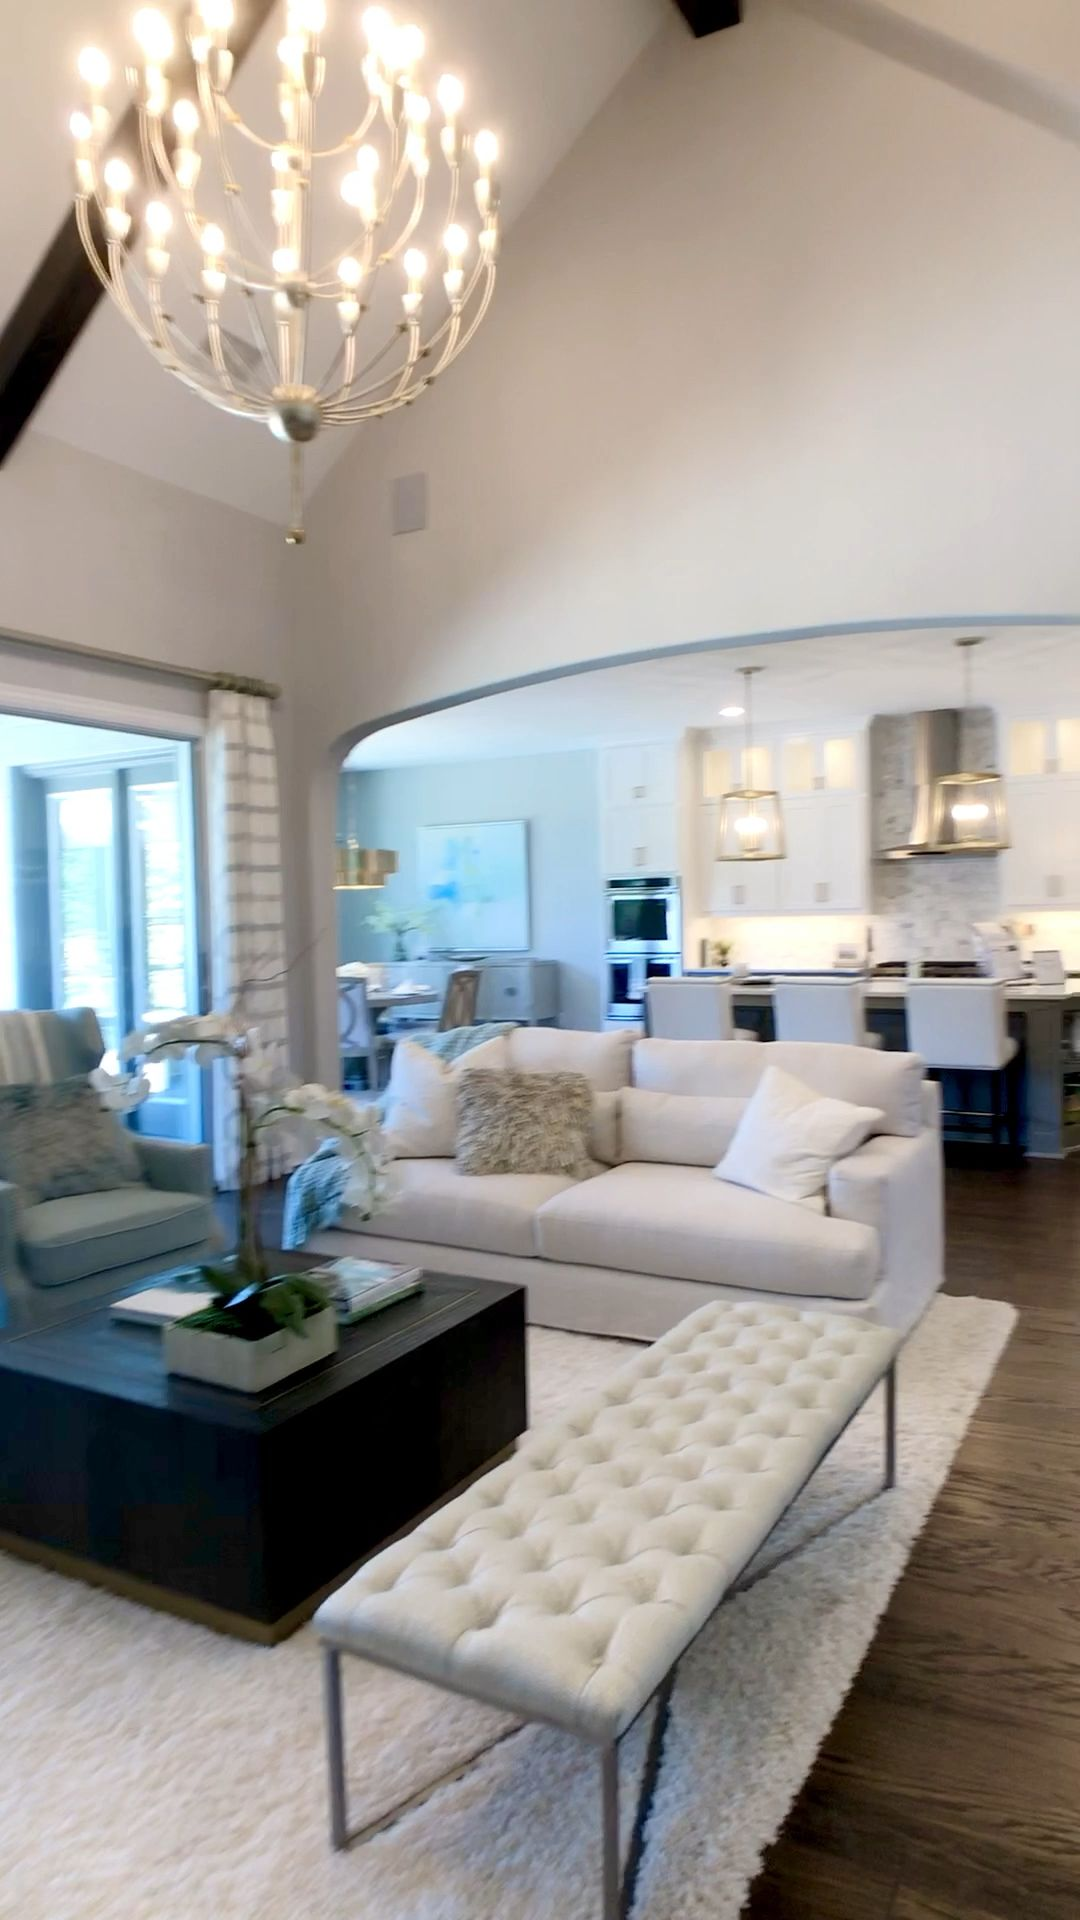 Photo of Living Room open concept with White Kitchen